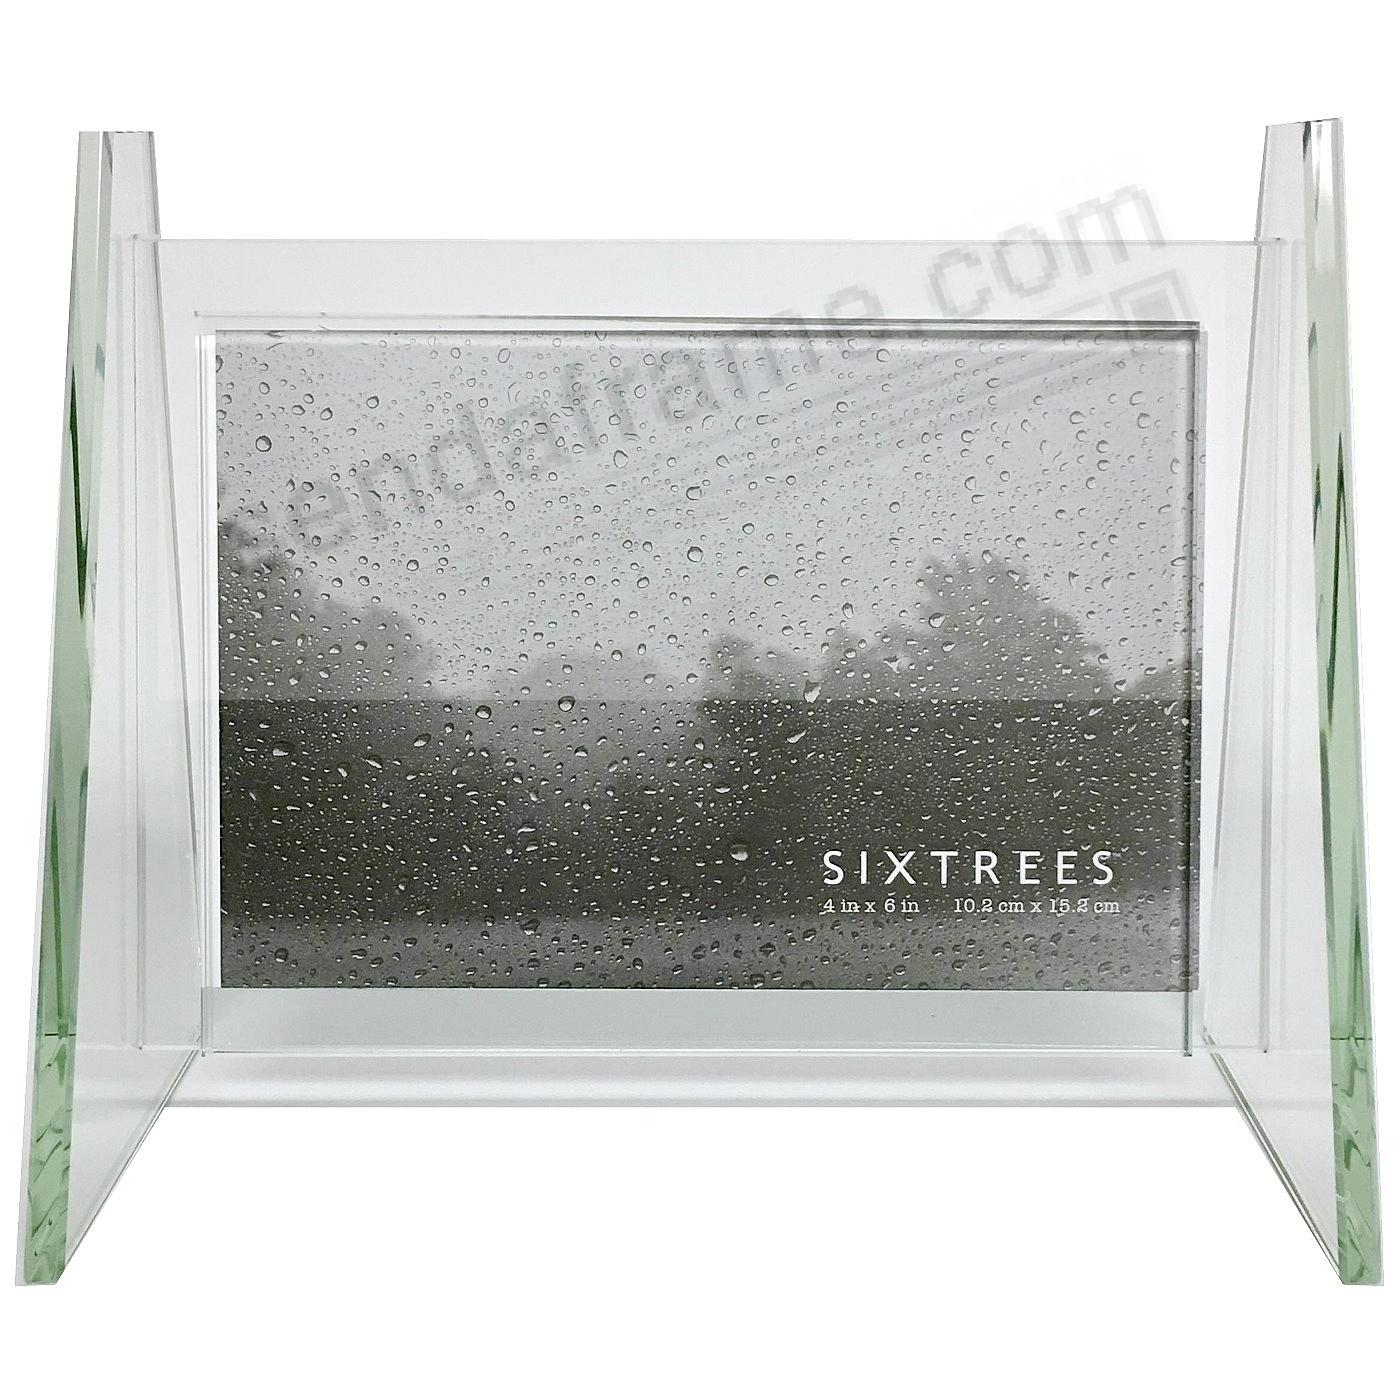 MILAN glass frame w/Side Rail Stand for your 6x4 print by Sixtrees ...